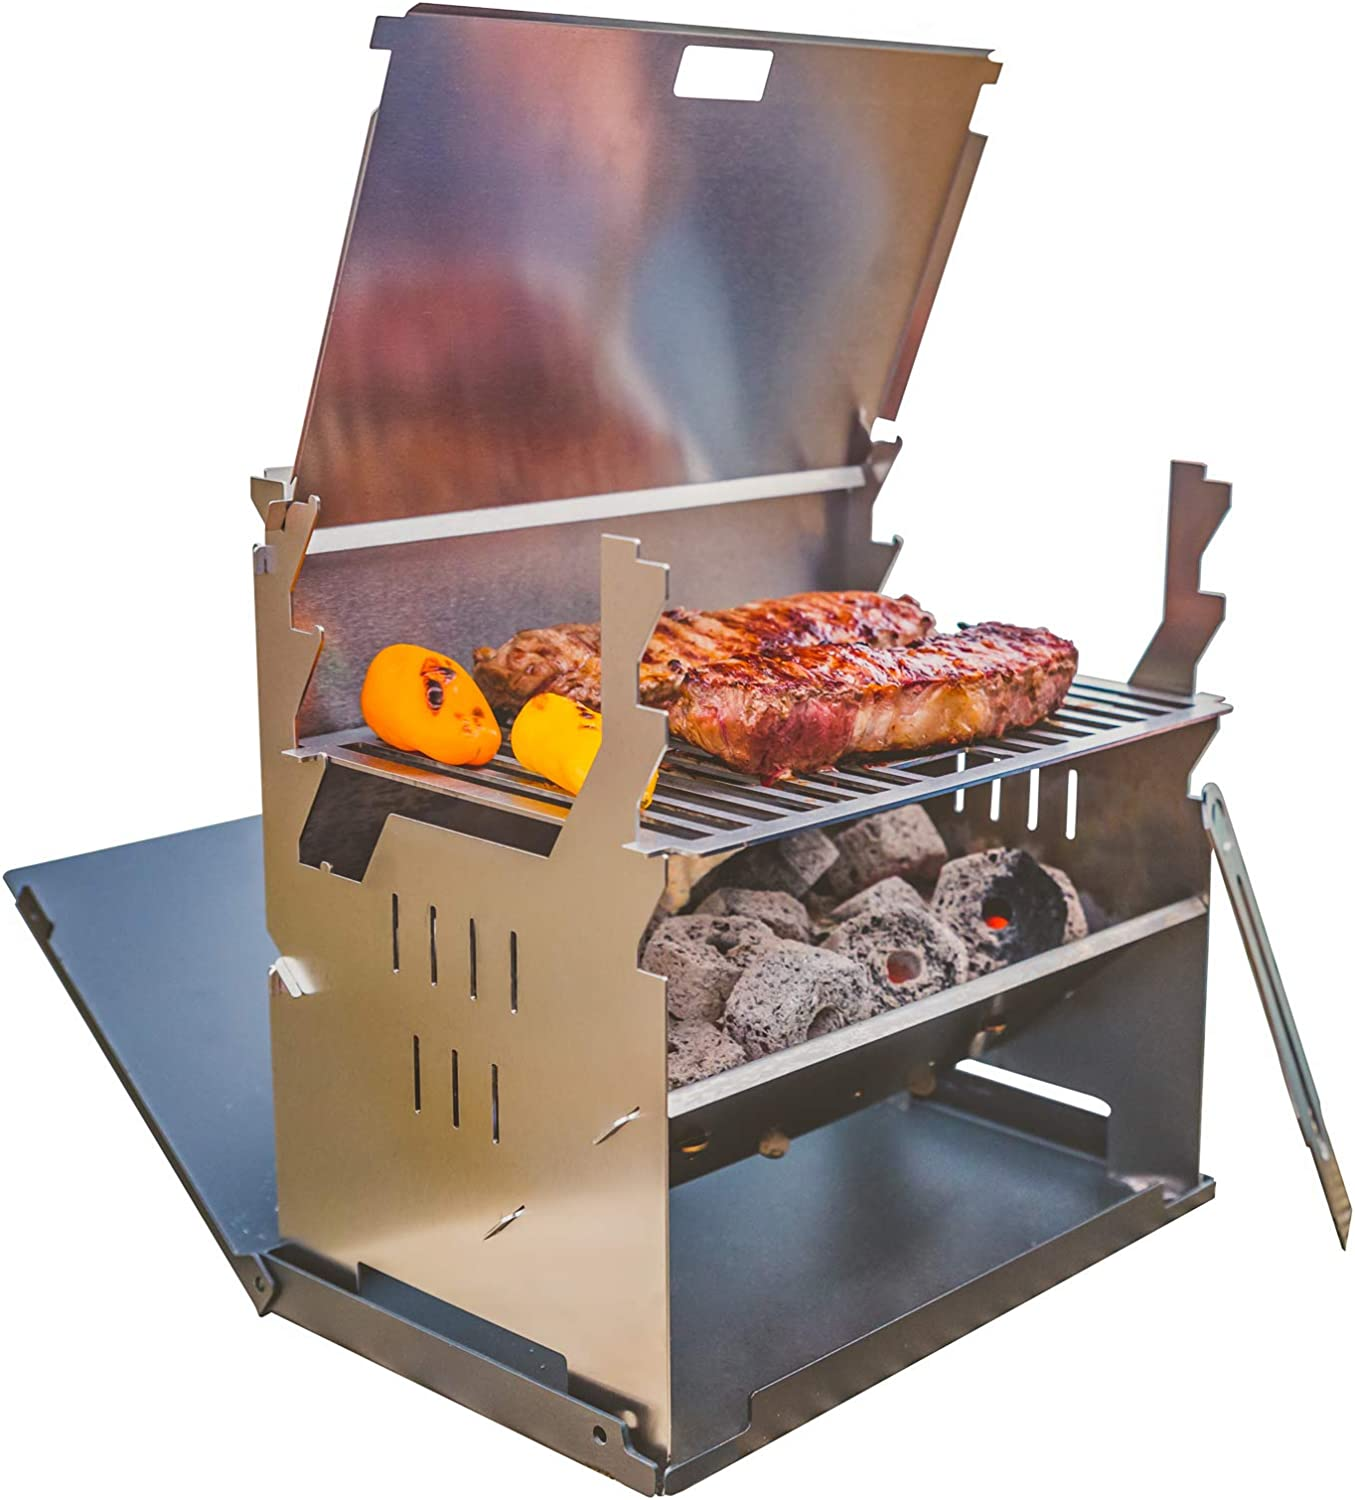 FENNEK GRILL, Tablet Grill, Laptop Grill, Holzkohle Grill, Outdoor Grill, Mobiler Grill, Camping Grill, Picknick Grill, Notebook Grill, Grill to go 1